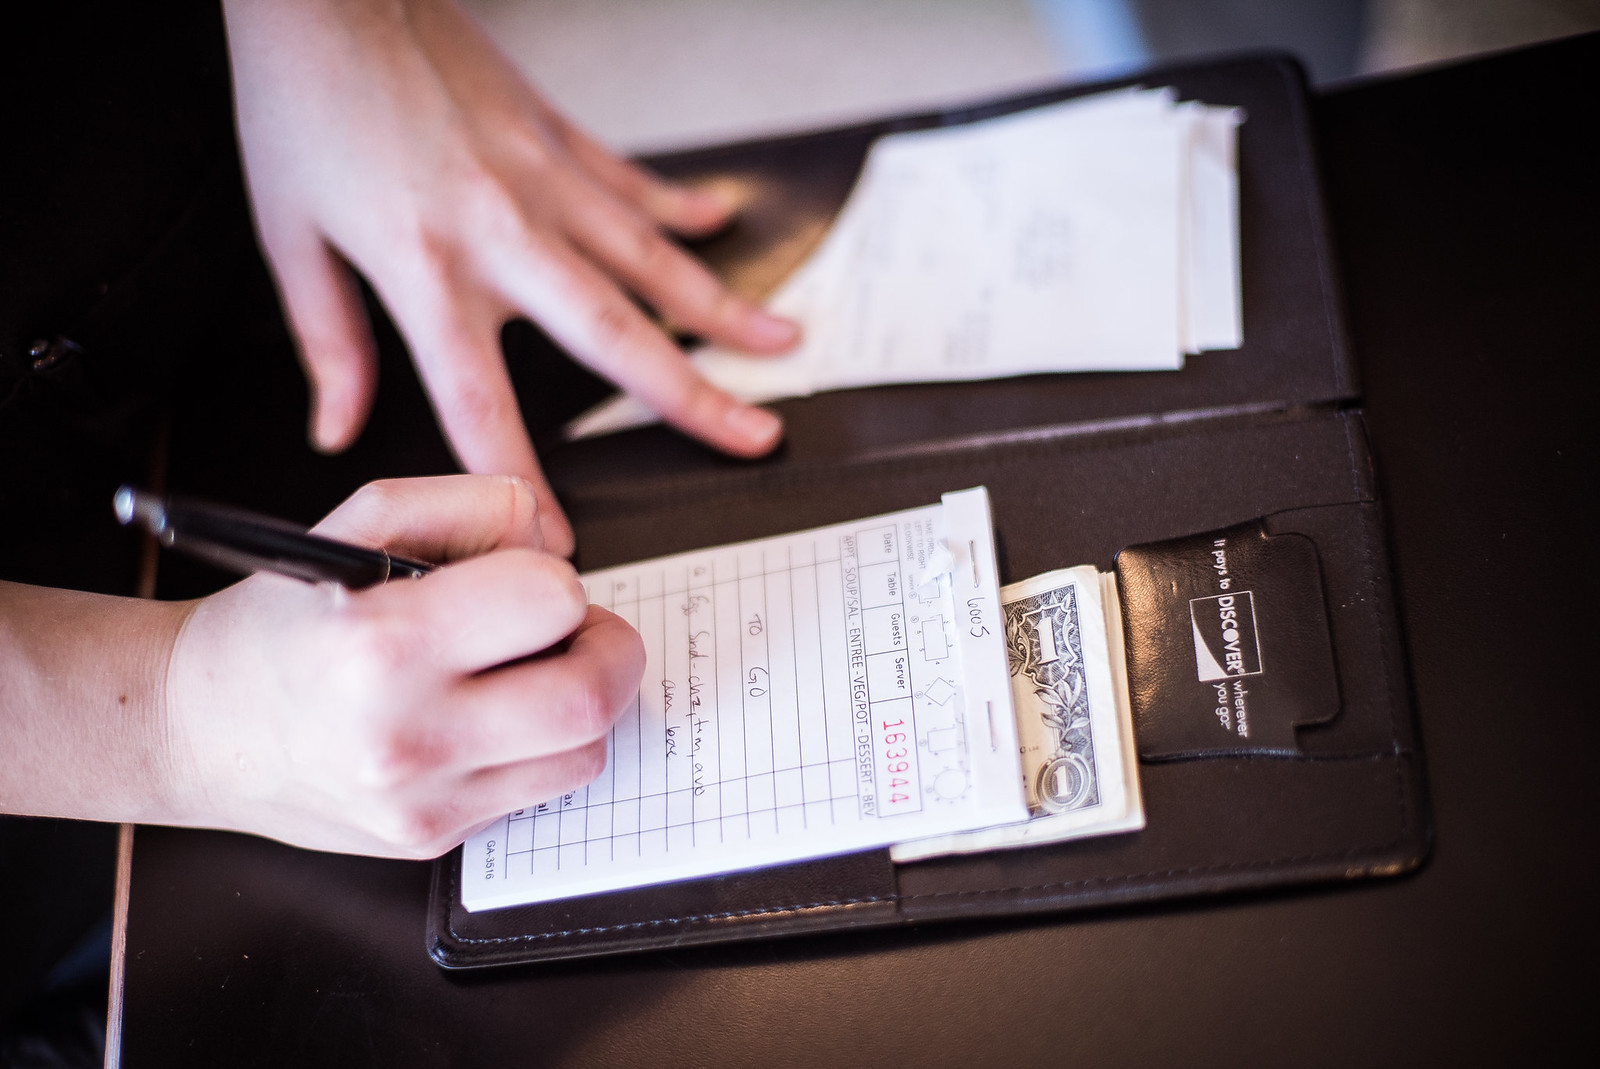 Two hands on a restaurant check holder.